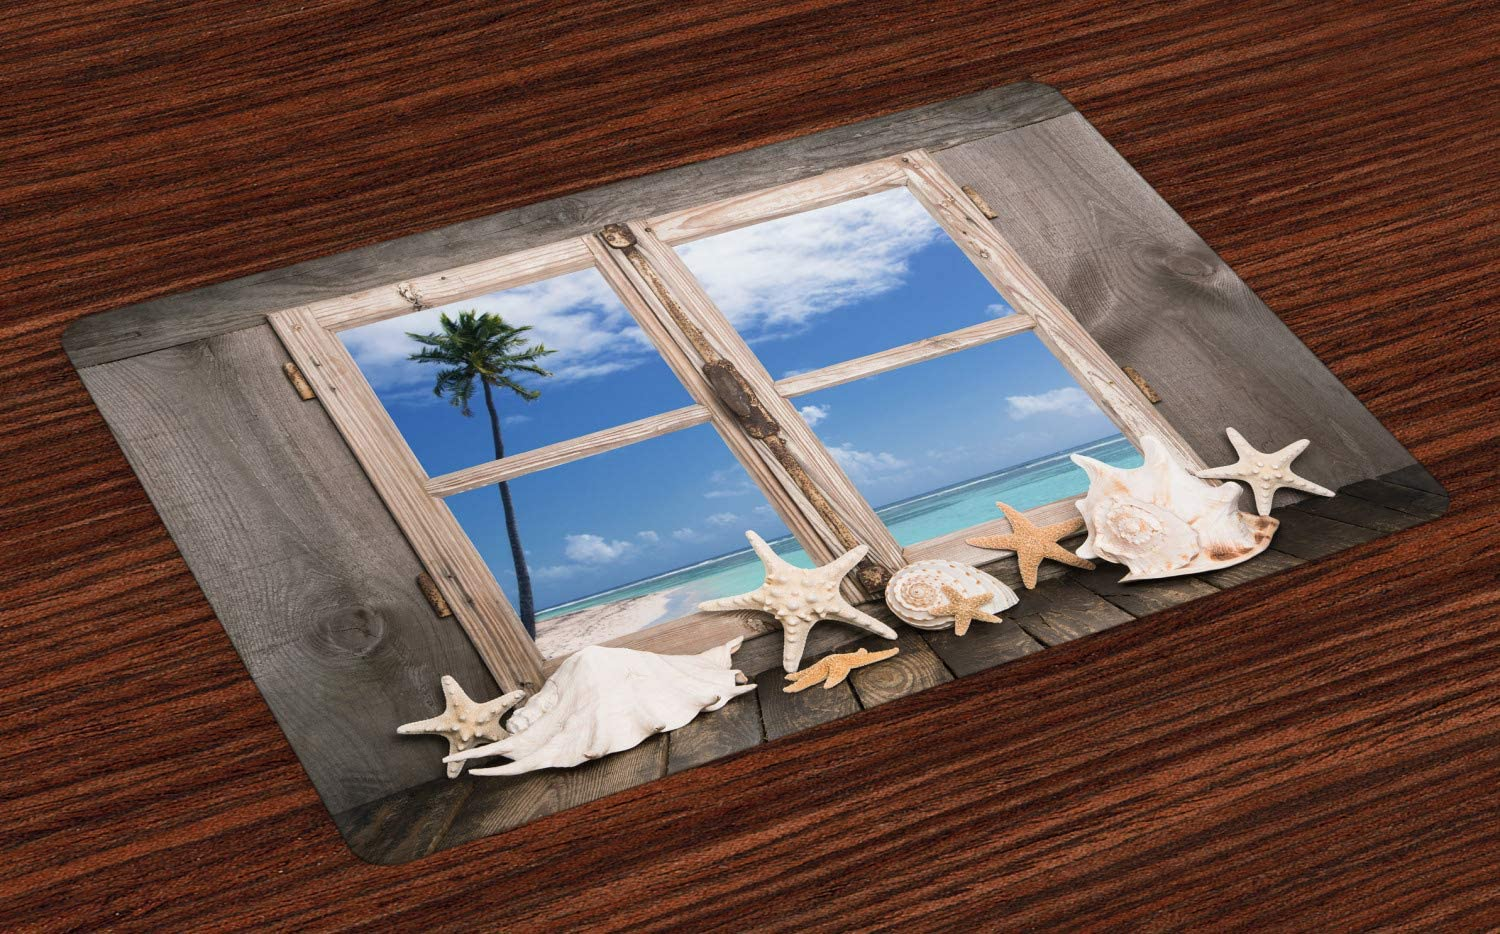 Ambesonne Beach Place Mats Set of 4, Summer Holiday wih Seashells Starfish and Palm Tree Ocean Print, Washable Fabric Placemats for Dining Room Kitchen Table Decor, Brown Blue